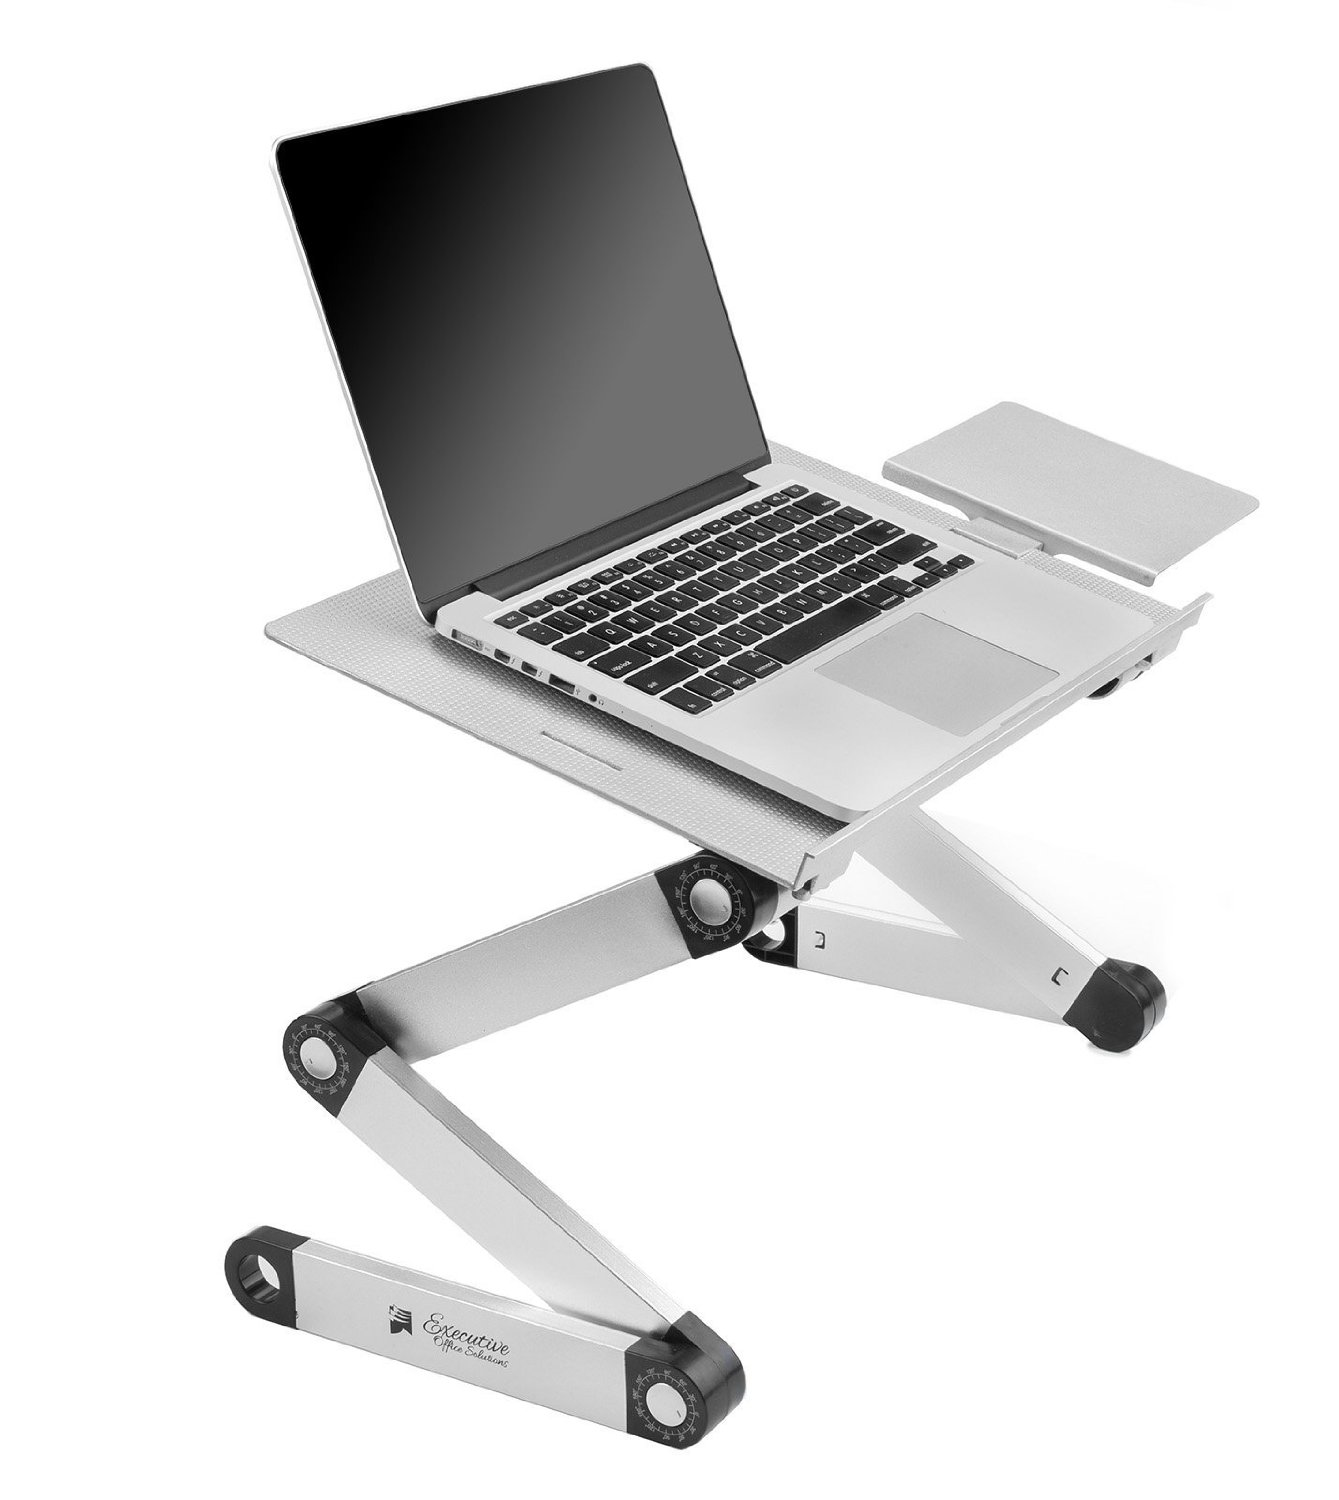 5 Executive Office Solutions Portable Adjustable Aluminum Laptop Desk